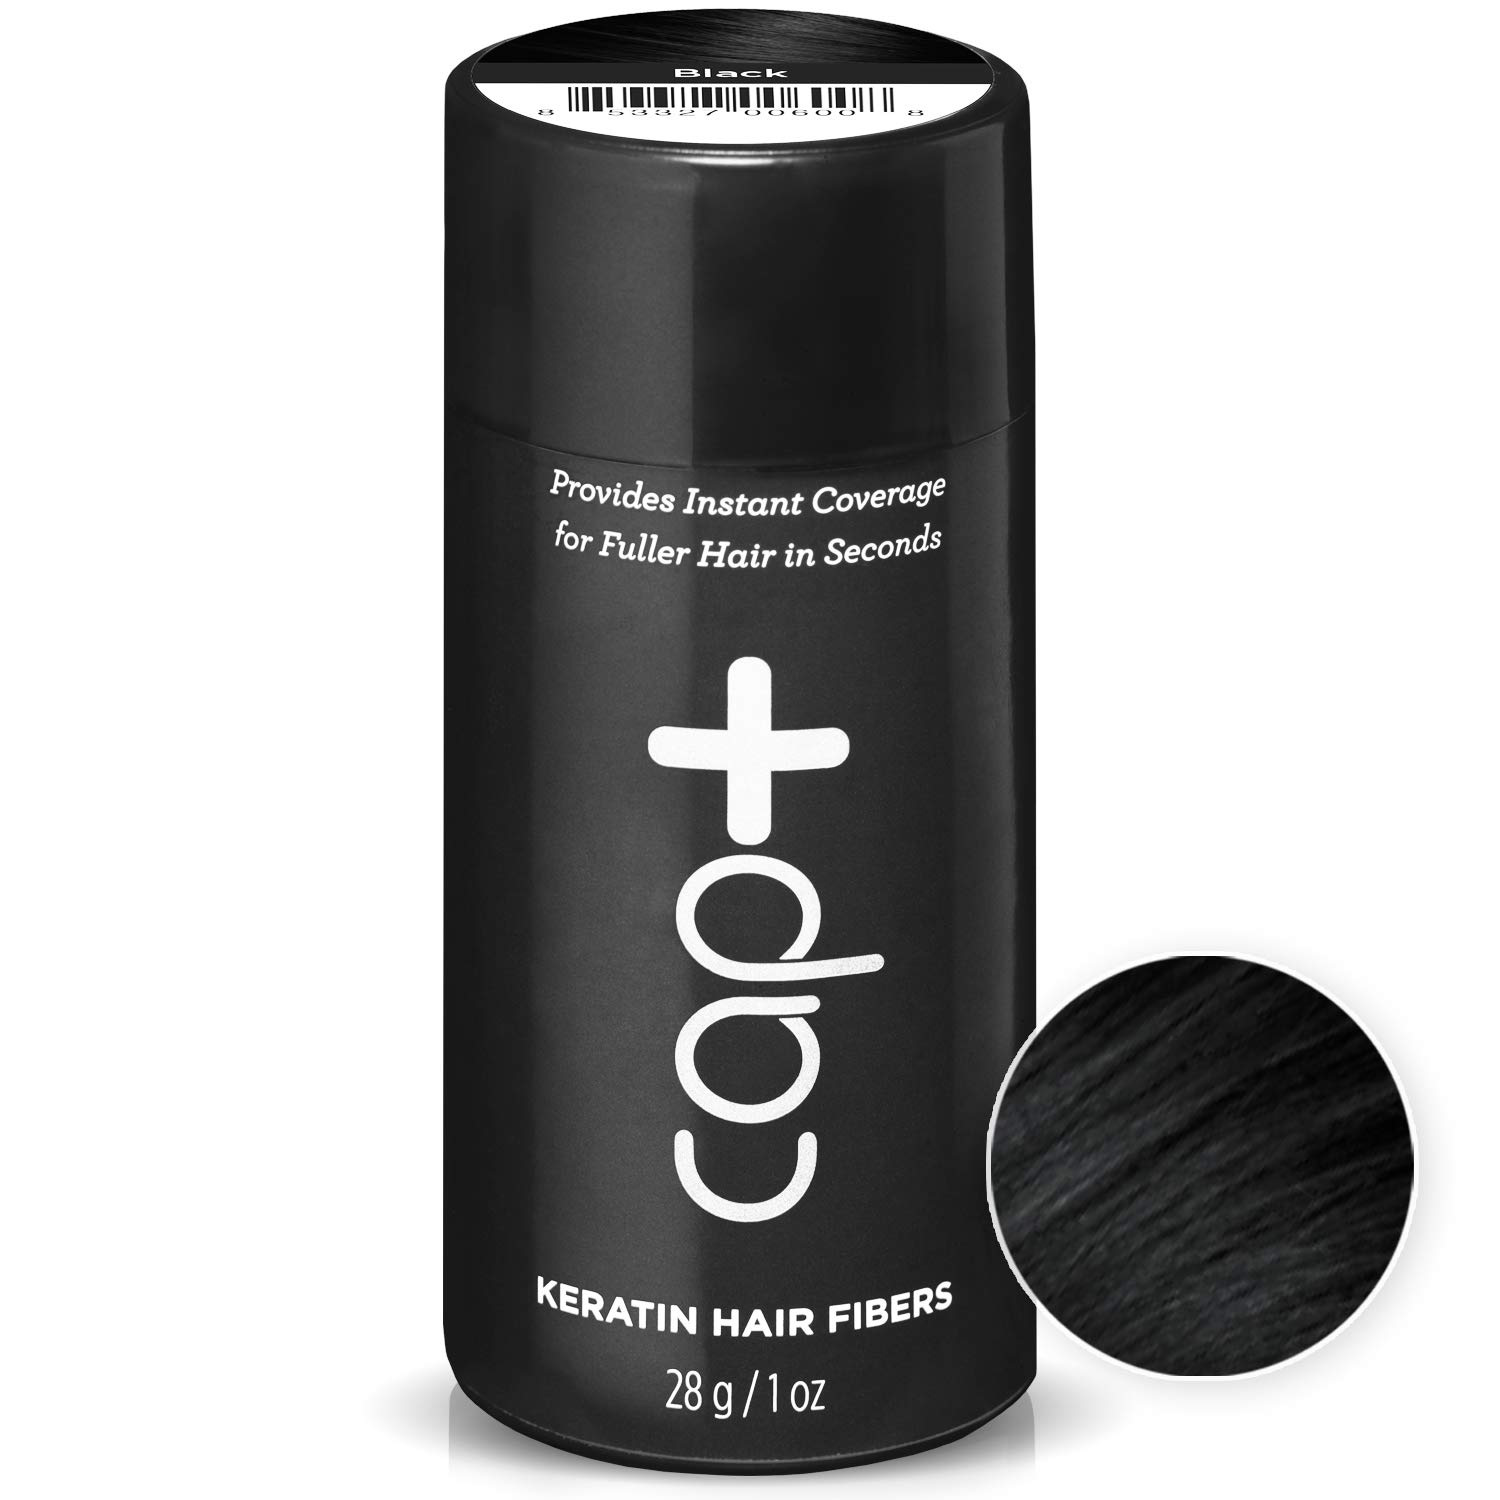 Amazon.com: Cap+ Keratin Hair Fibers (Black) - The Temporary, Quick Fix That Provides Instant Coverage for Fuller Hair in Seconds - By Capillus: Beauty